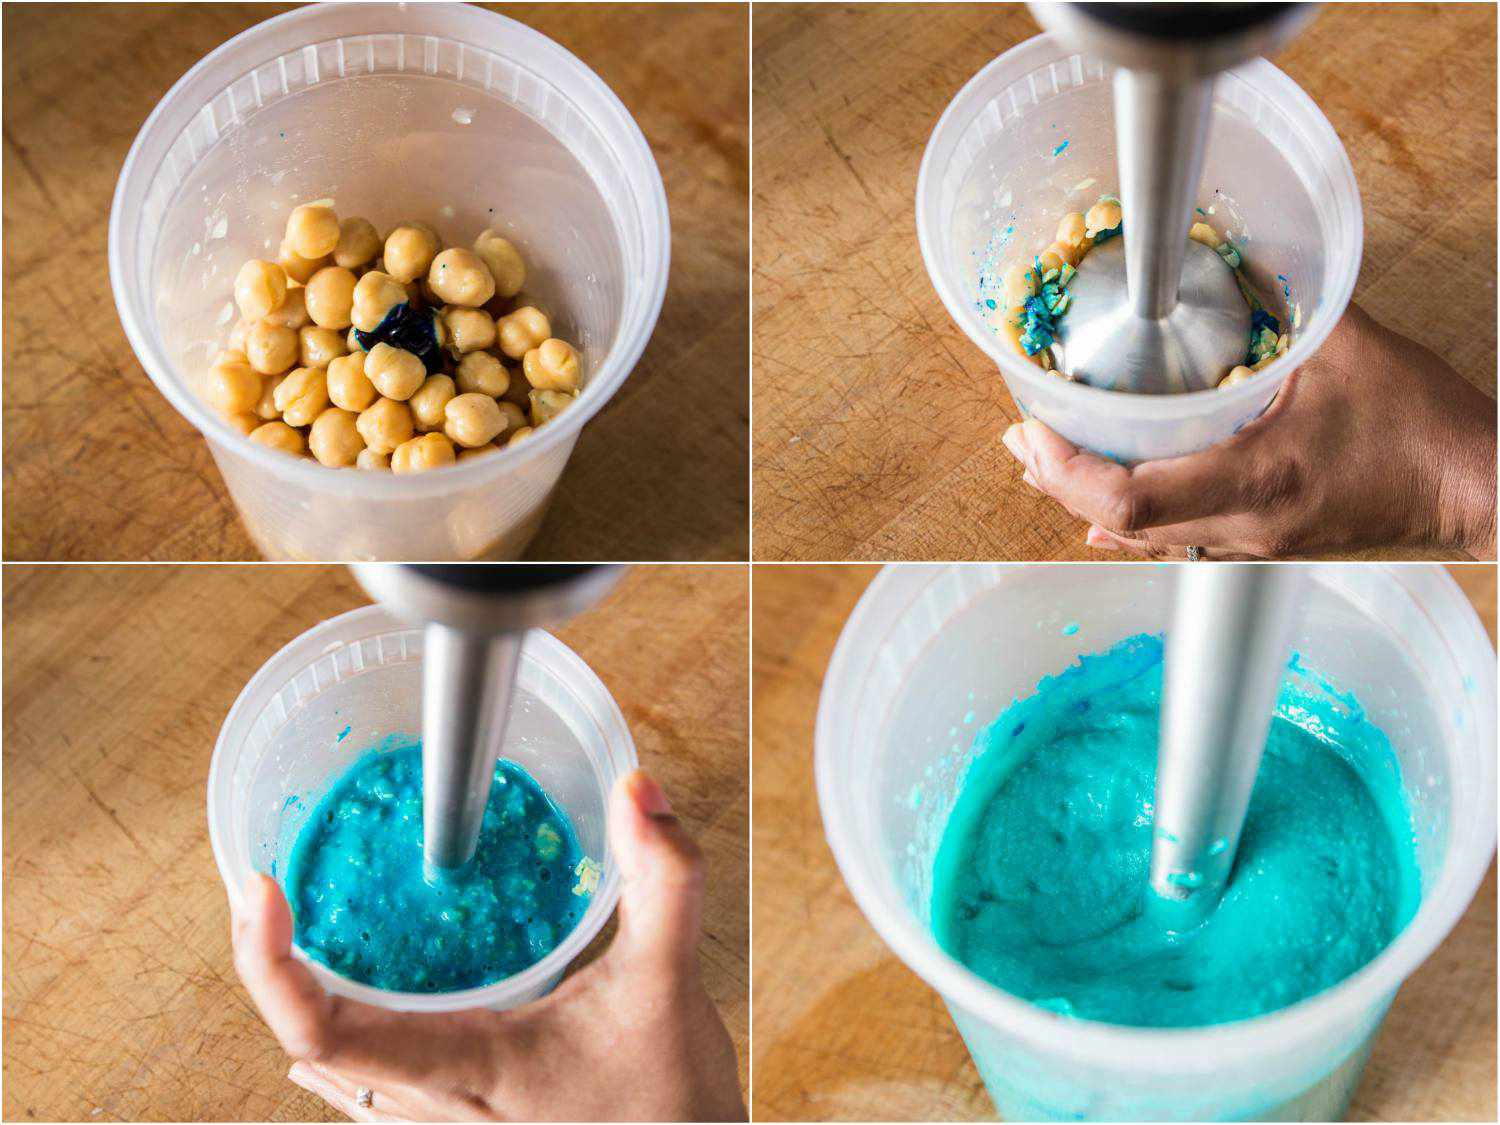 Collage showing different stages of puréeing chickpeas (mixed with blue food coloring) with an immersion blender